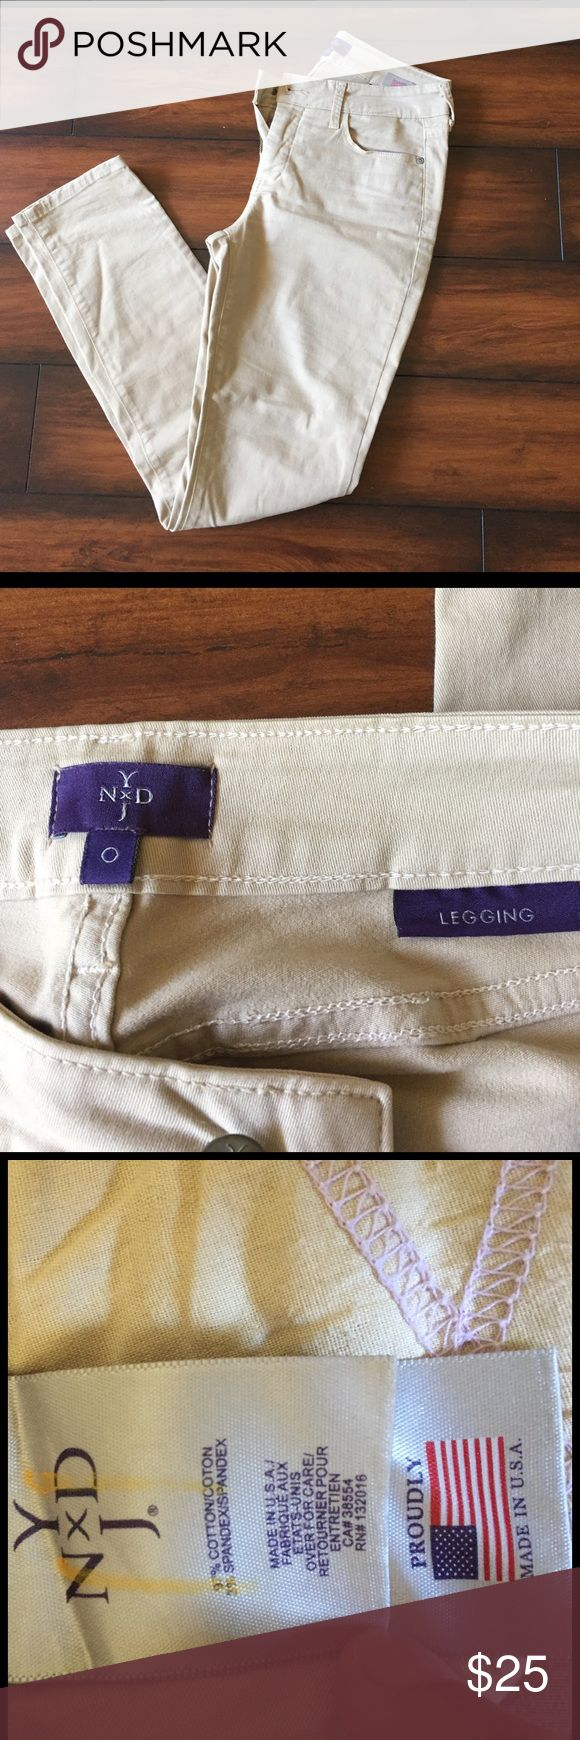 NYDJ skinny jeans tan color NYDJ skinny pants. Worn only a few times. NYDJ Jeans Skinny